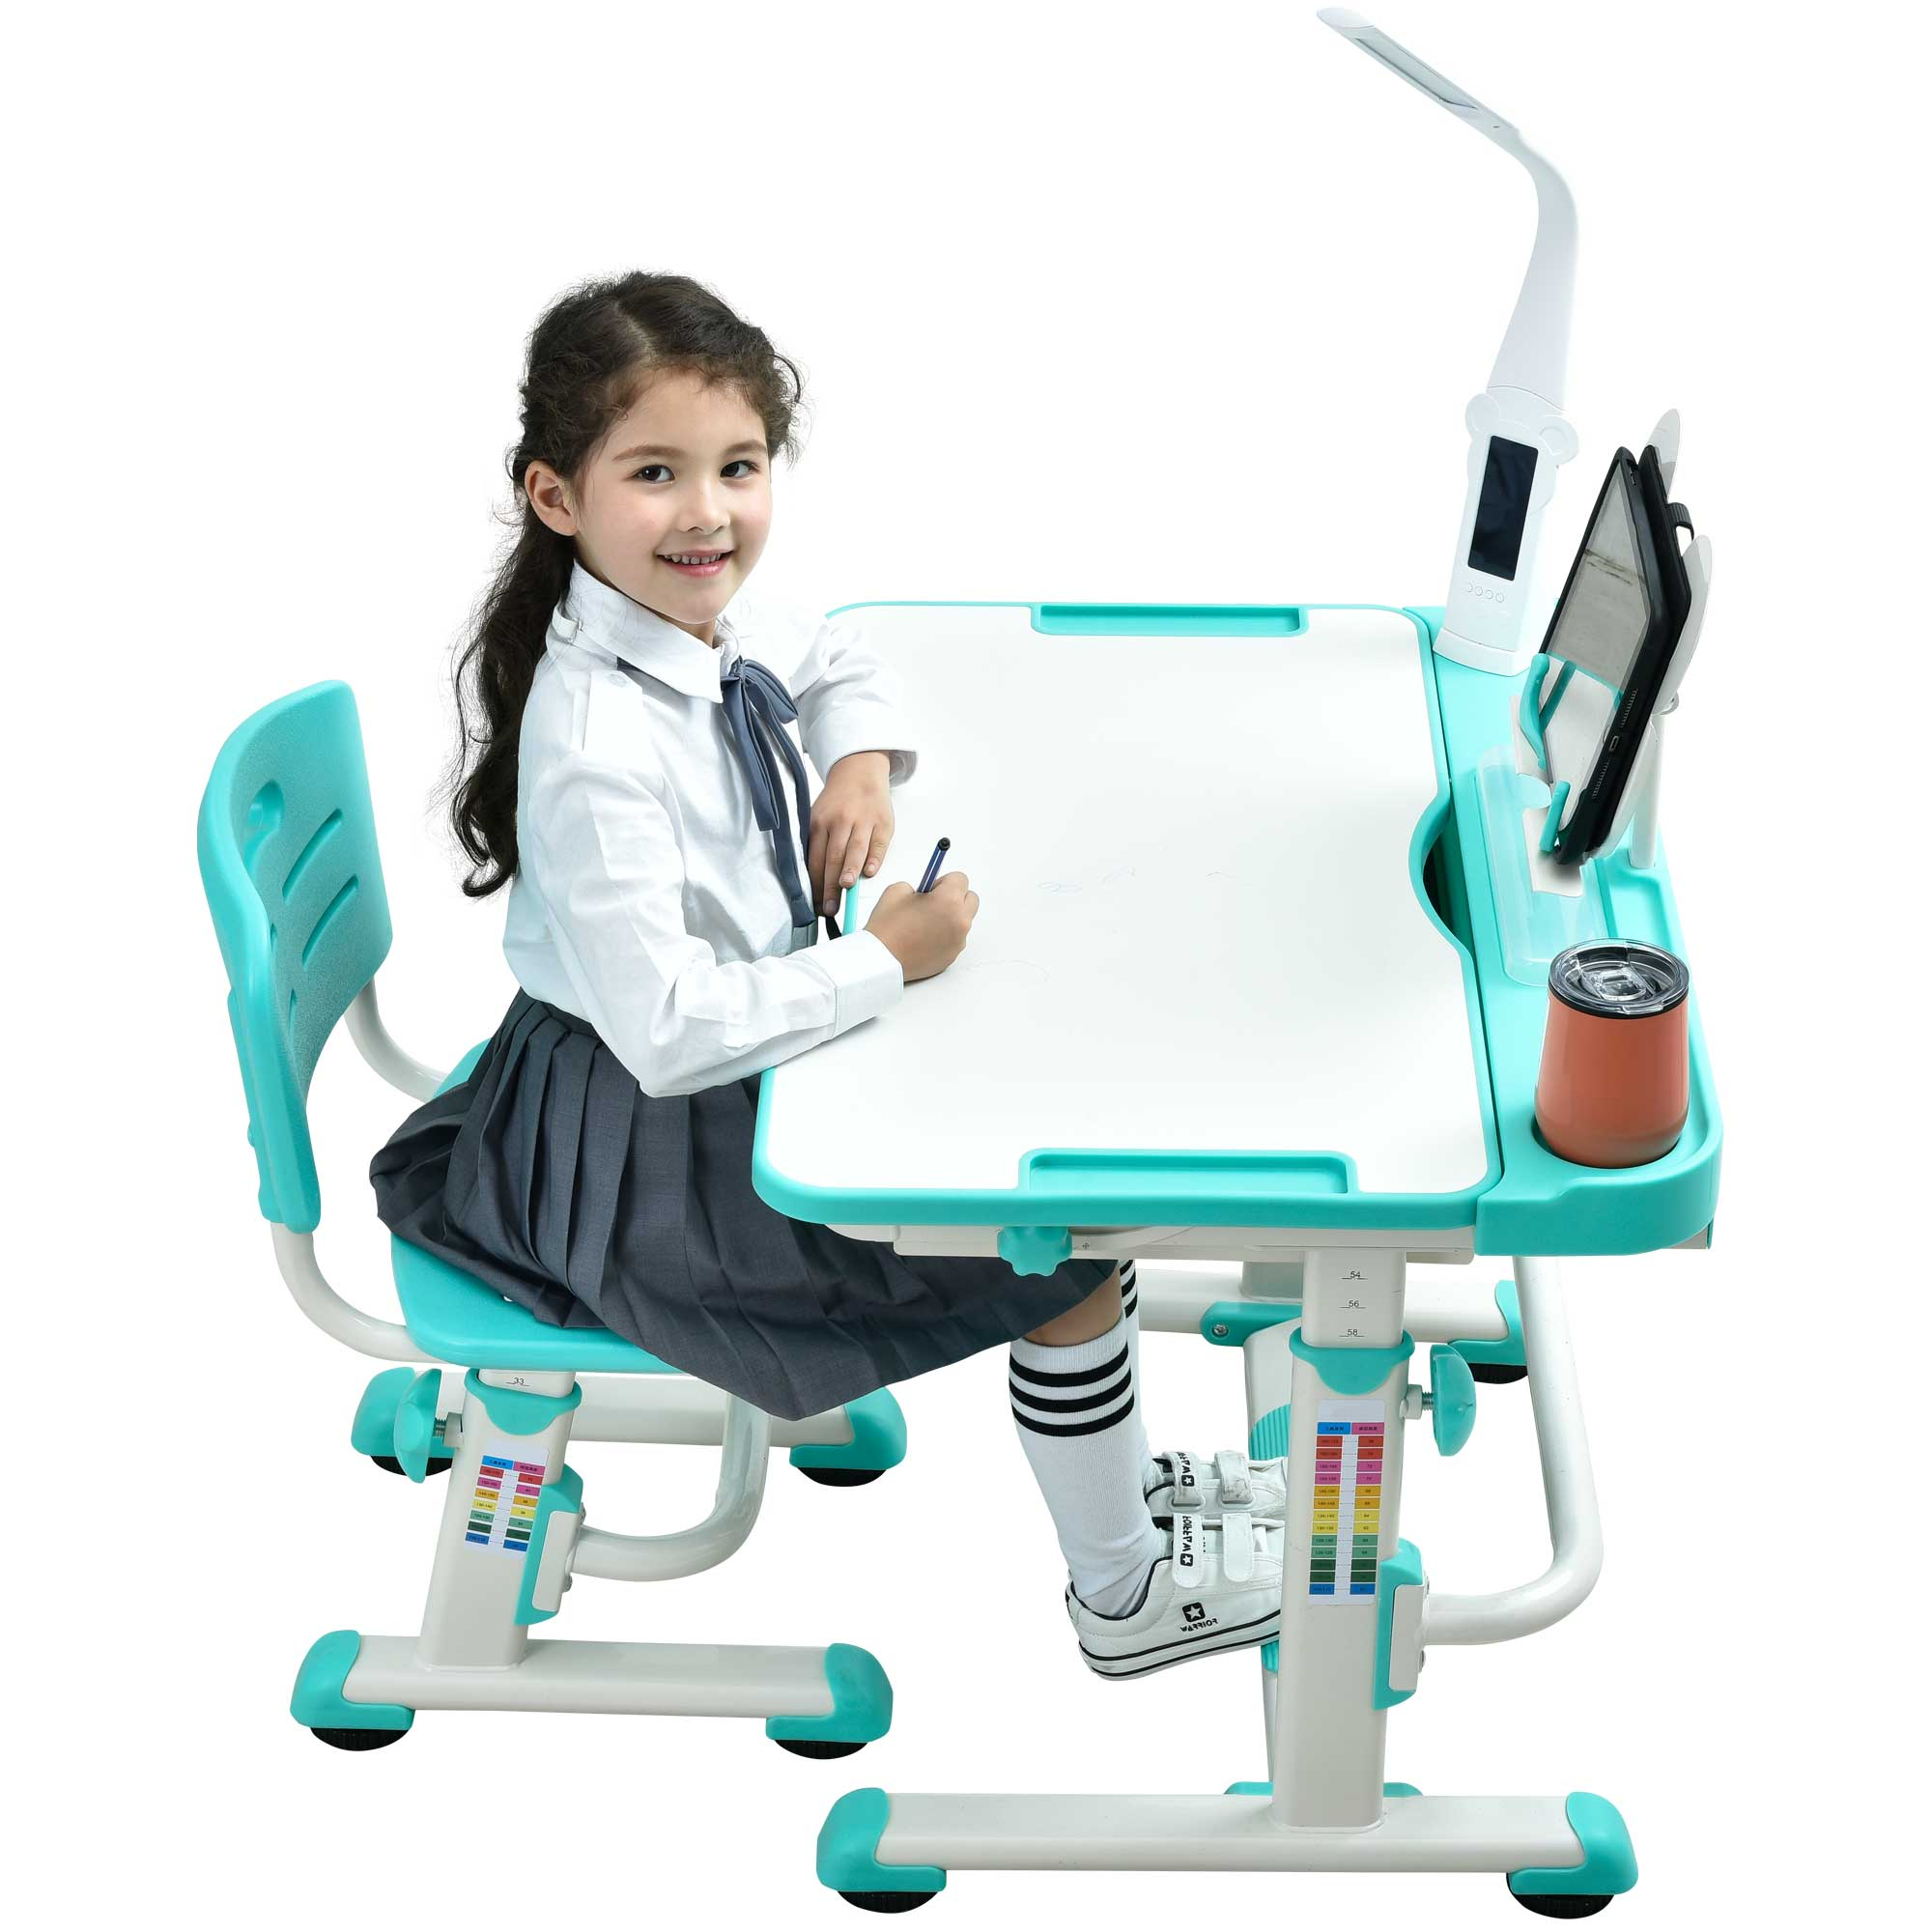 ergonomic-kids-desk-study-table-height-adjustable-sprite-green-desk-for-boys-and-girls-04